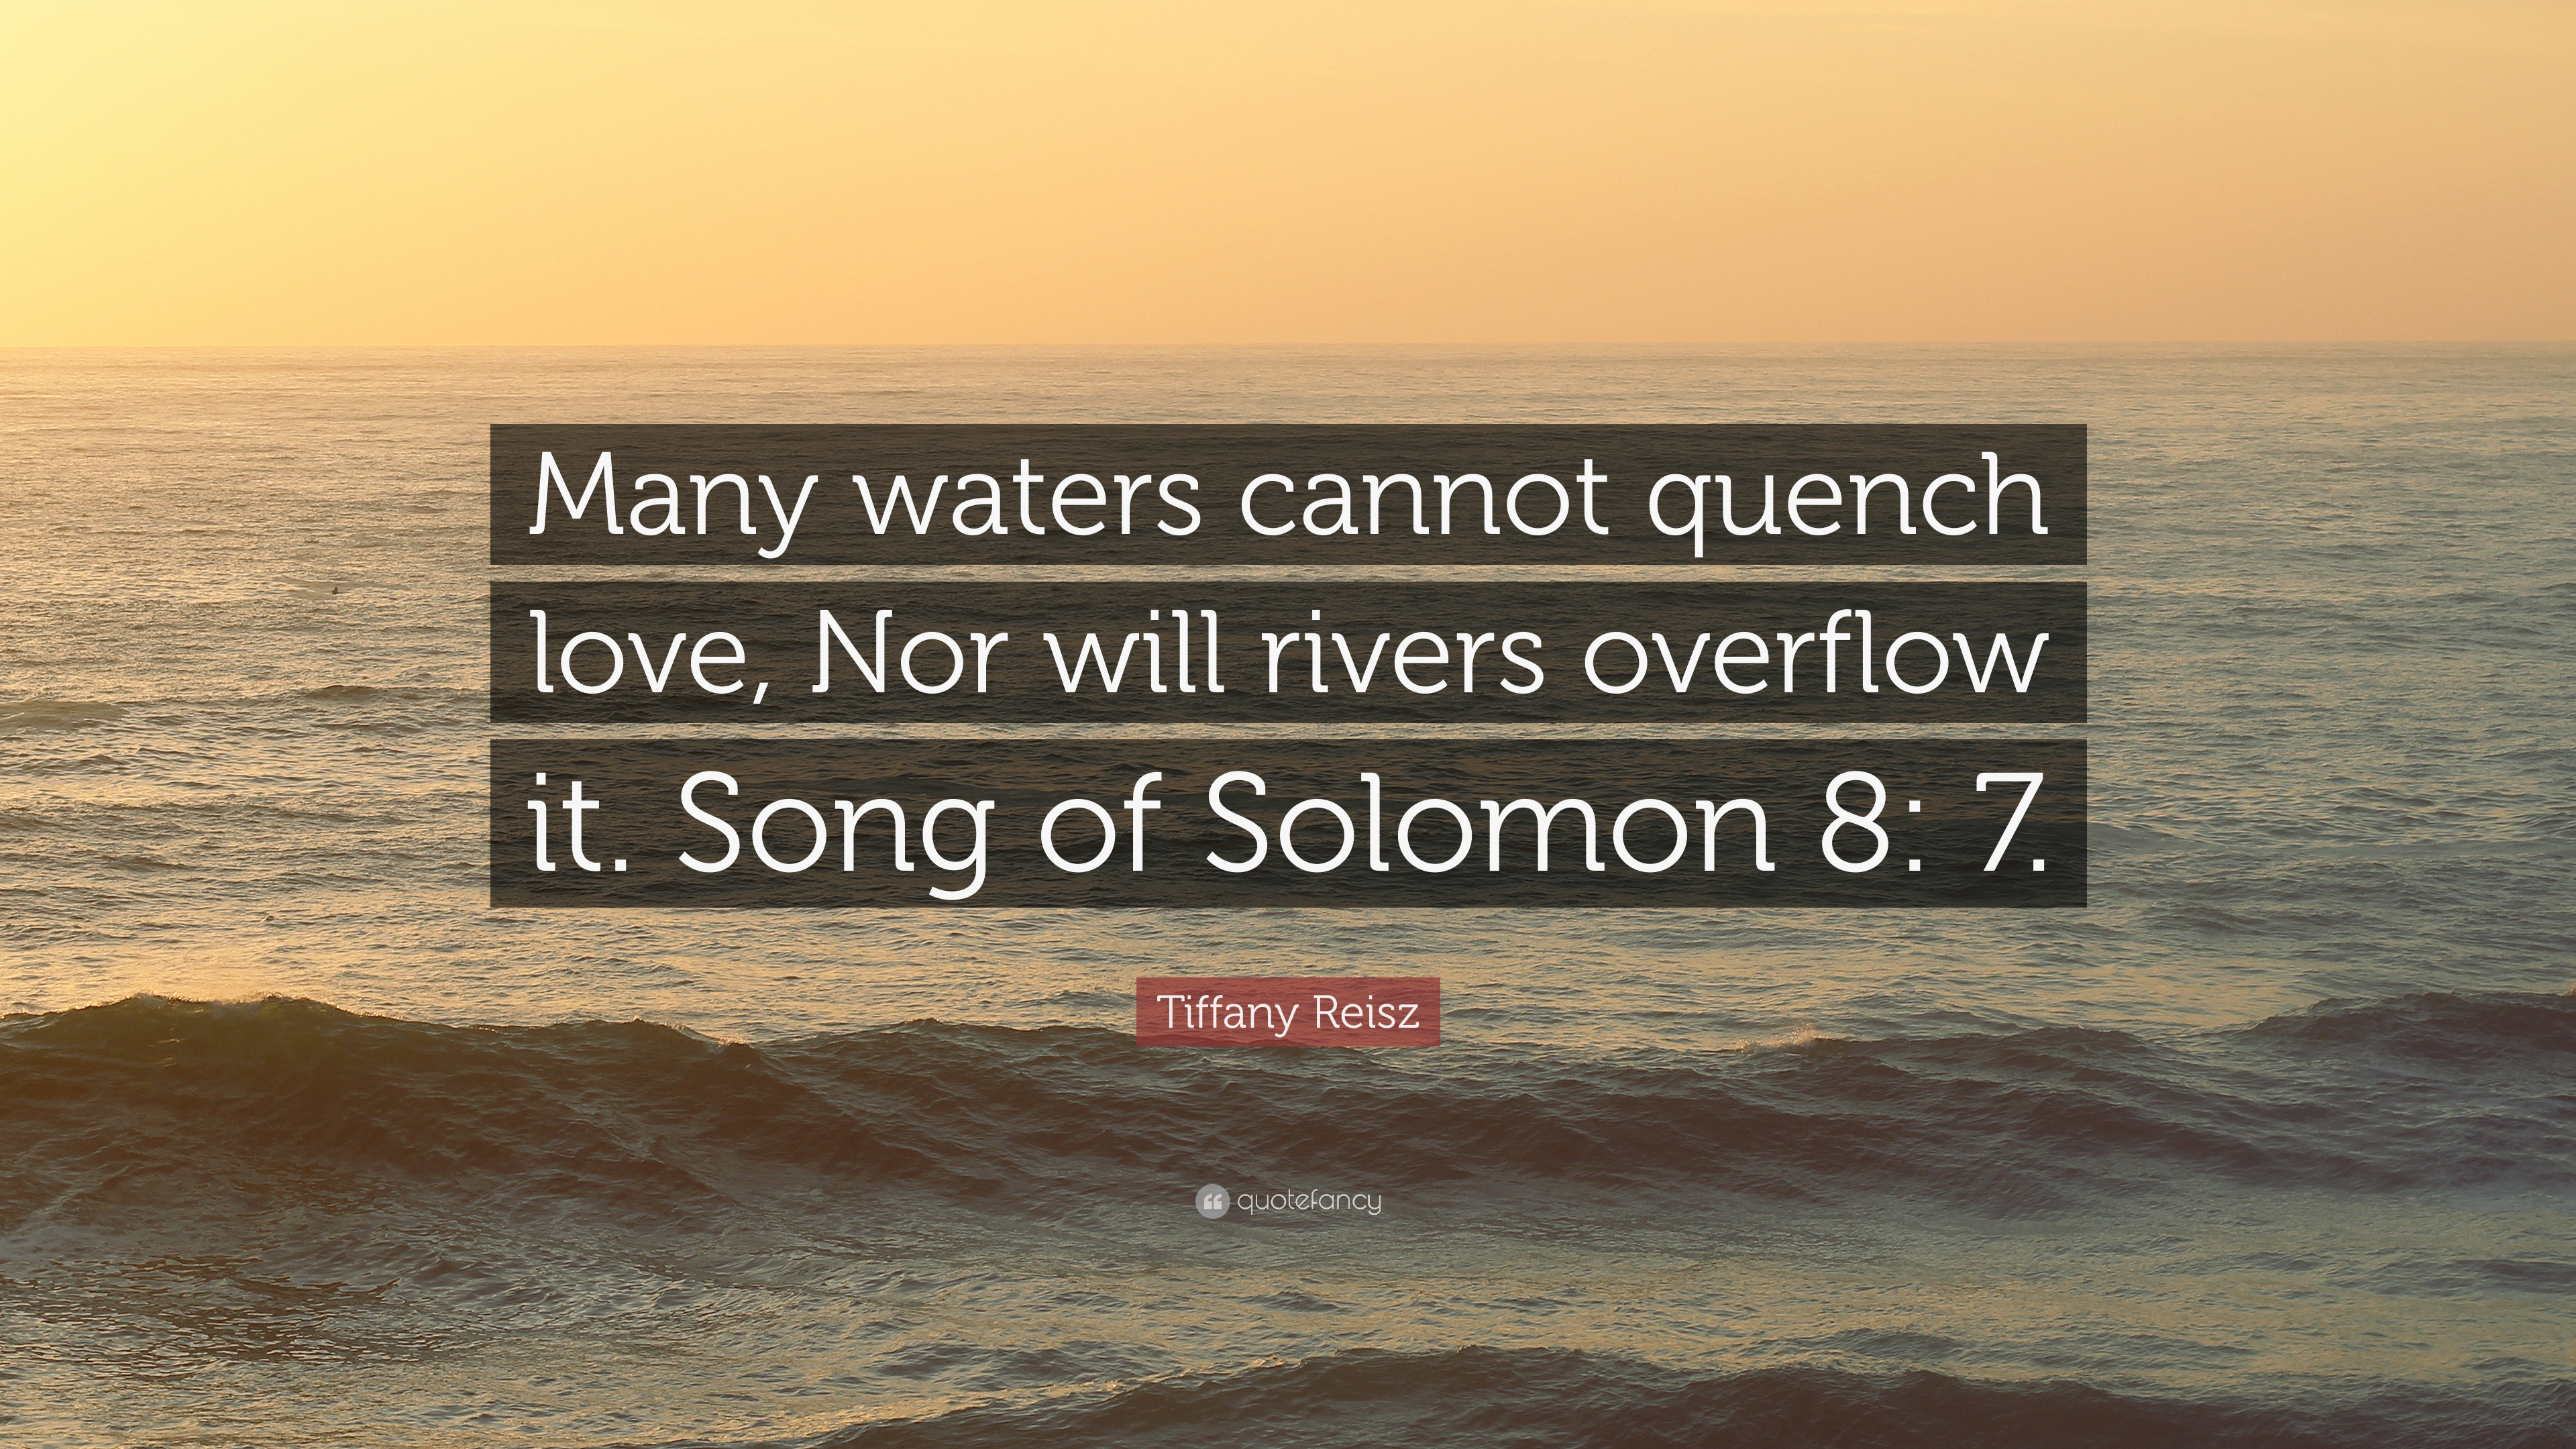 Tiffany Reisz Quote Many Waters Cannot Quench Love Nor Will Rivers Overflow It Song Of Solomon 8 7 9 Wallpapers Quotefancy